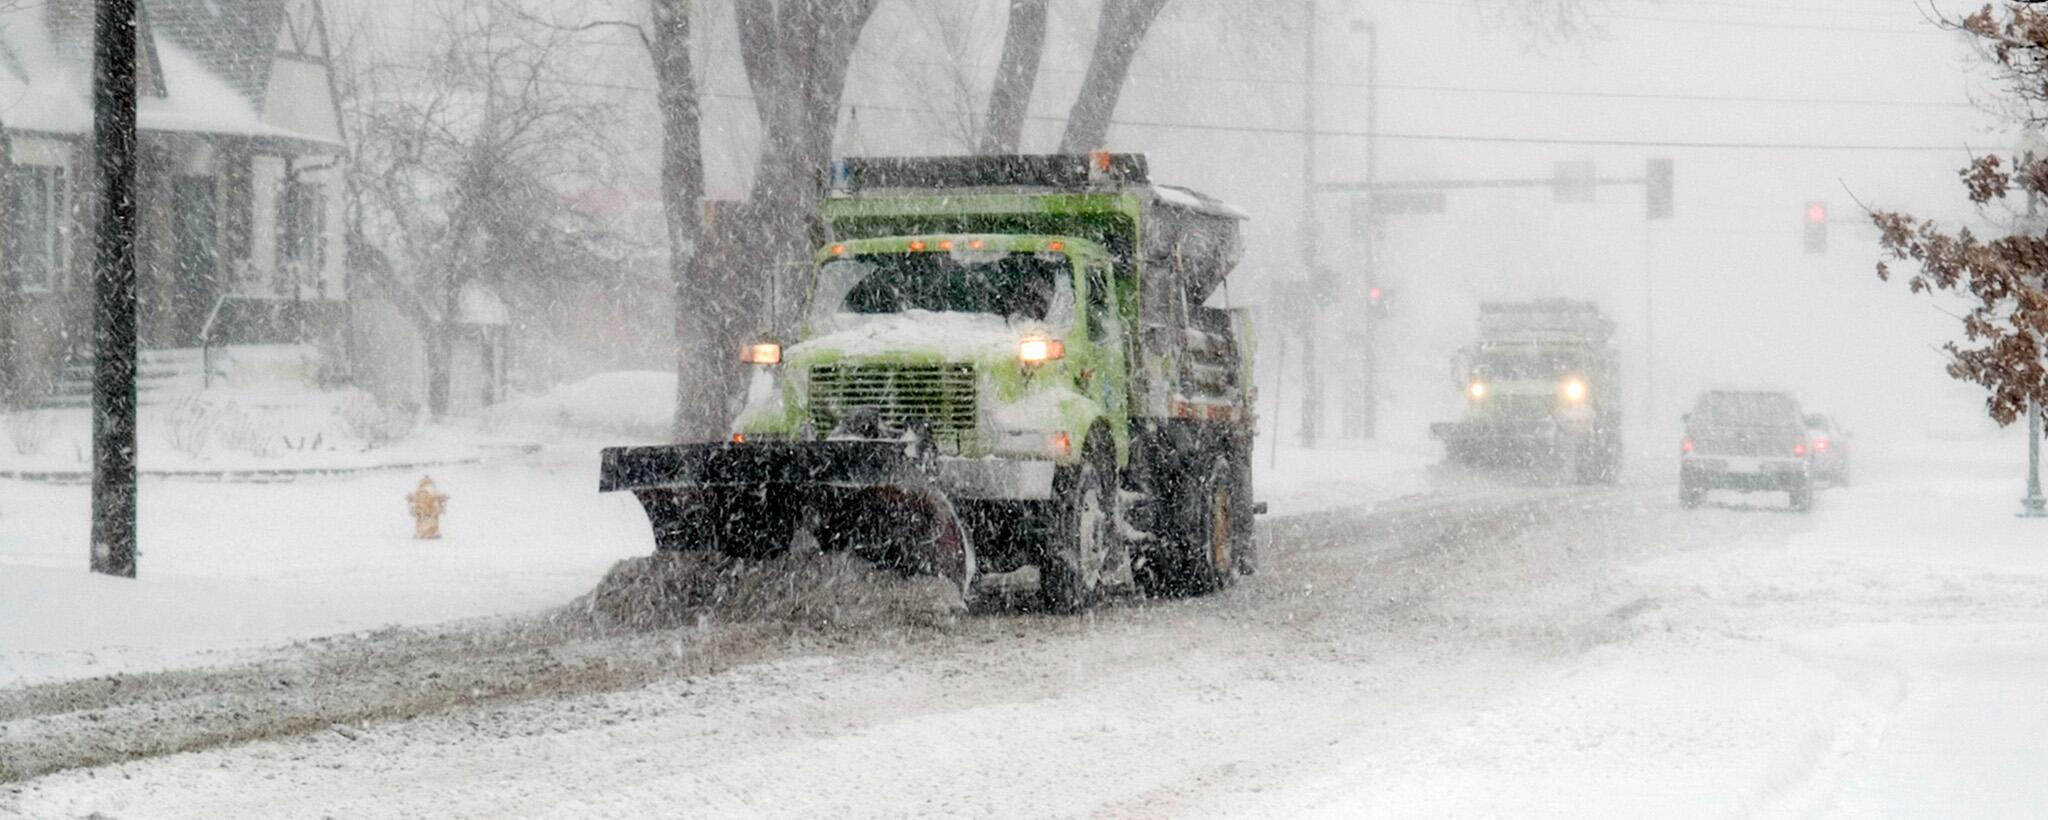 plow clears snow during a storm